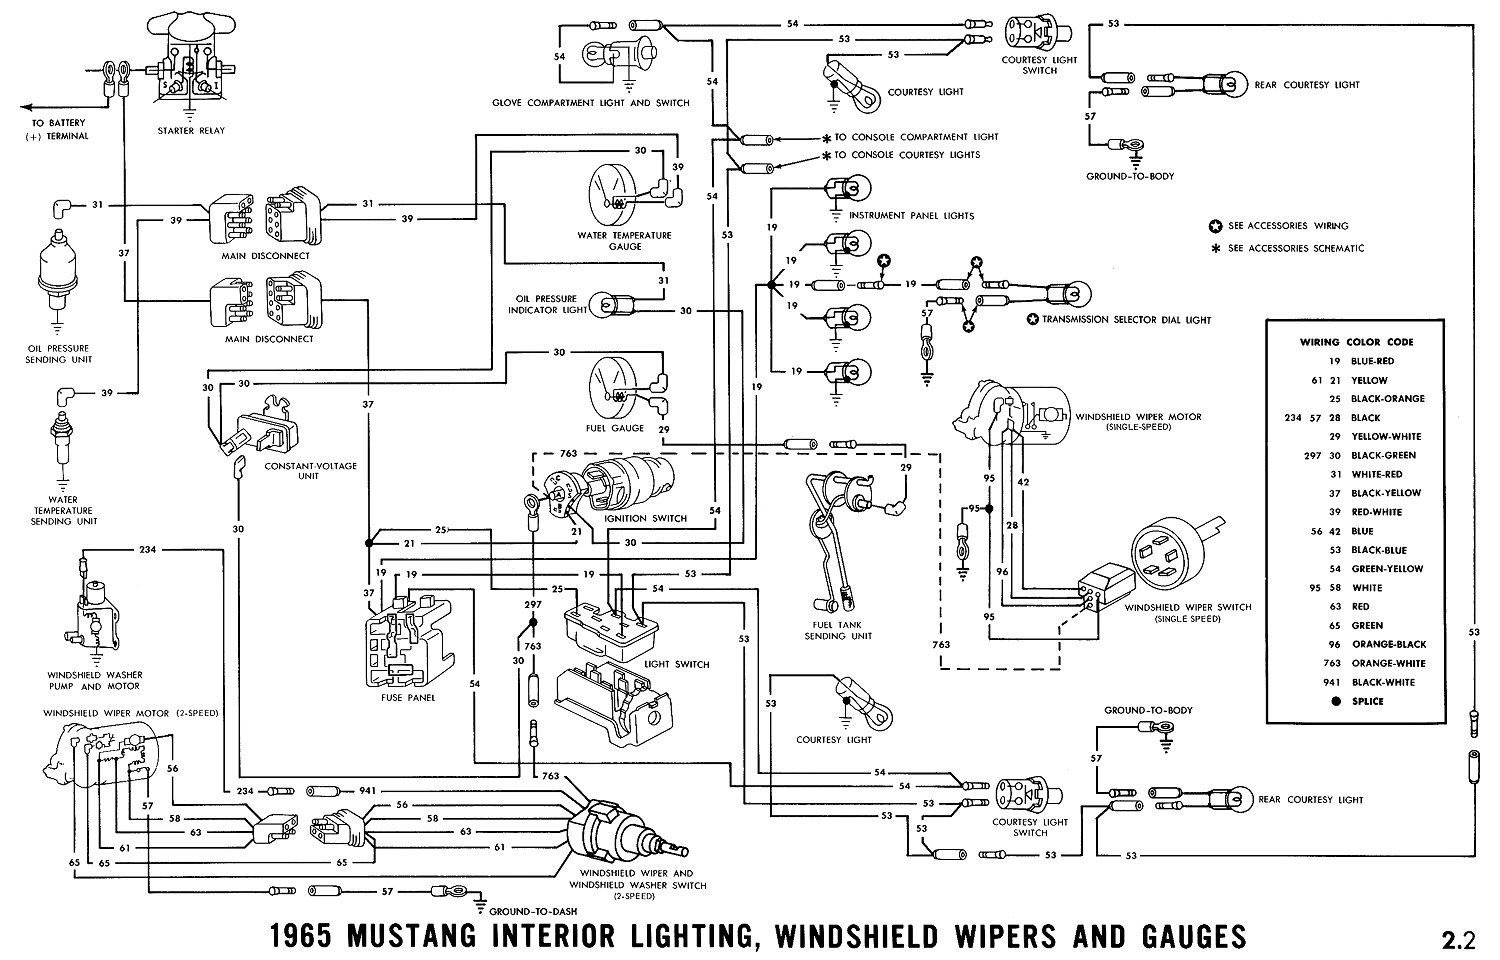 1965g 2013 mustang wiring diagram 1996 mustang radio wiring diagram 1966 mustang fuse box diagram at bayanpartner.co